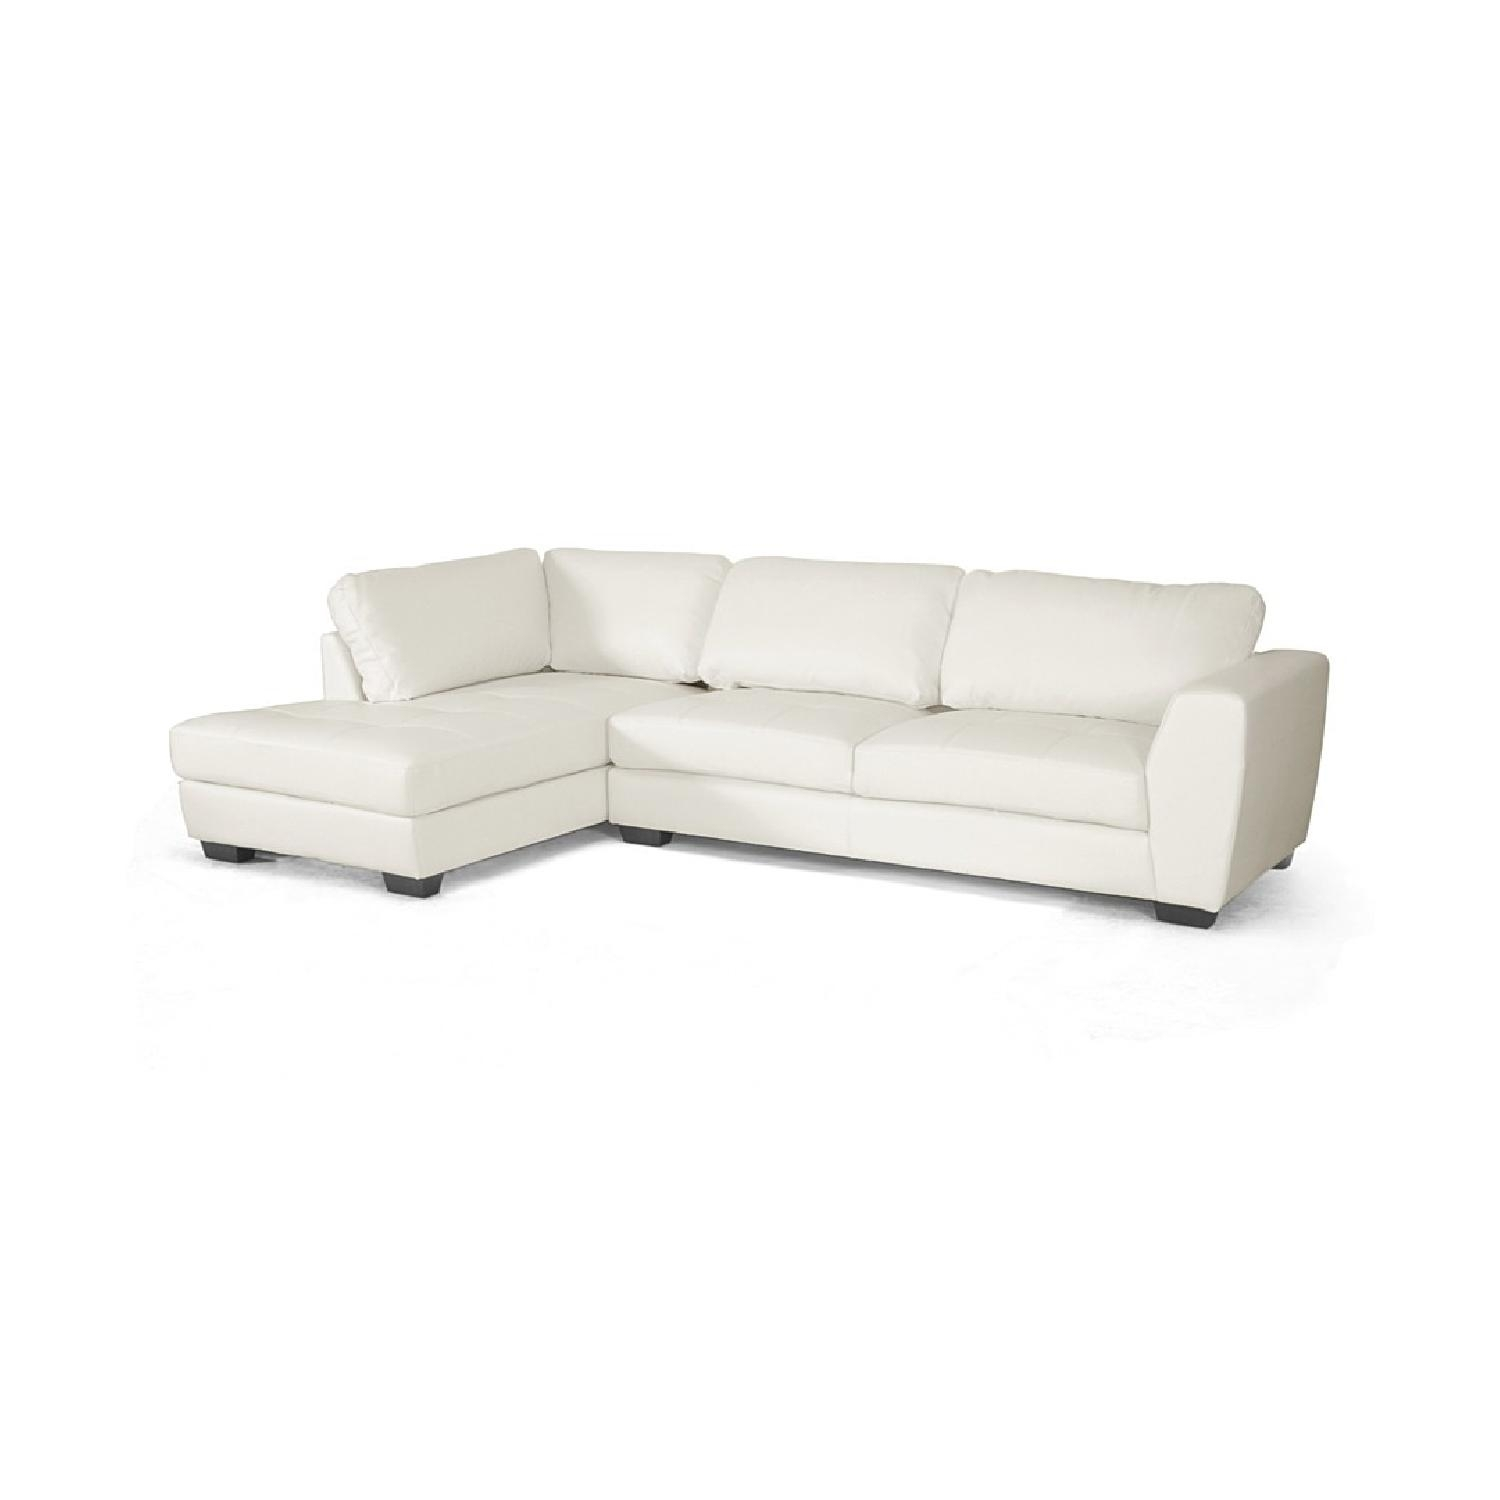 Sofa W Chaise – Home Decor 88 Inside Mcculla Sofa Sectionals With Reversible Chaise (View 19 of 30)